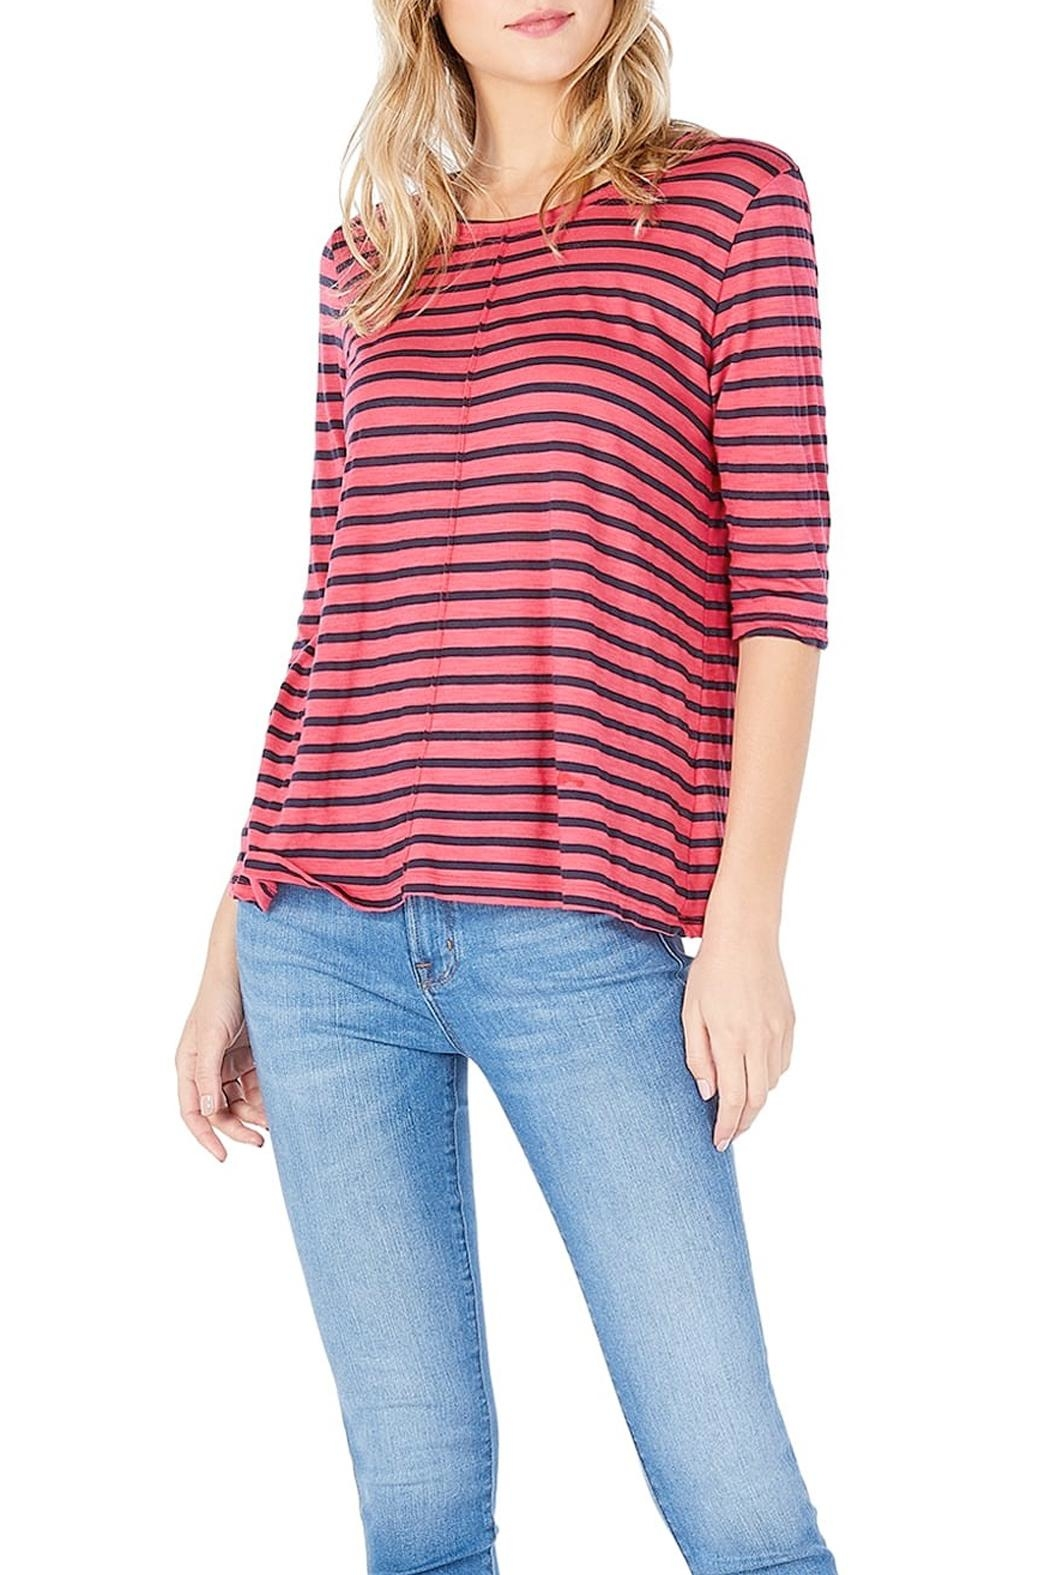 Michael Stars Striped Swing Tee - Front Full Image